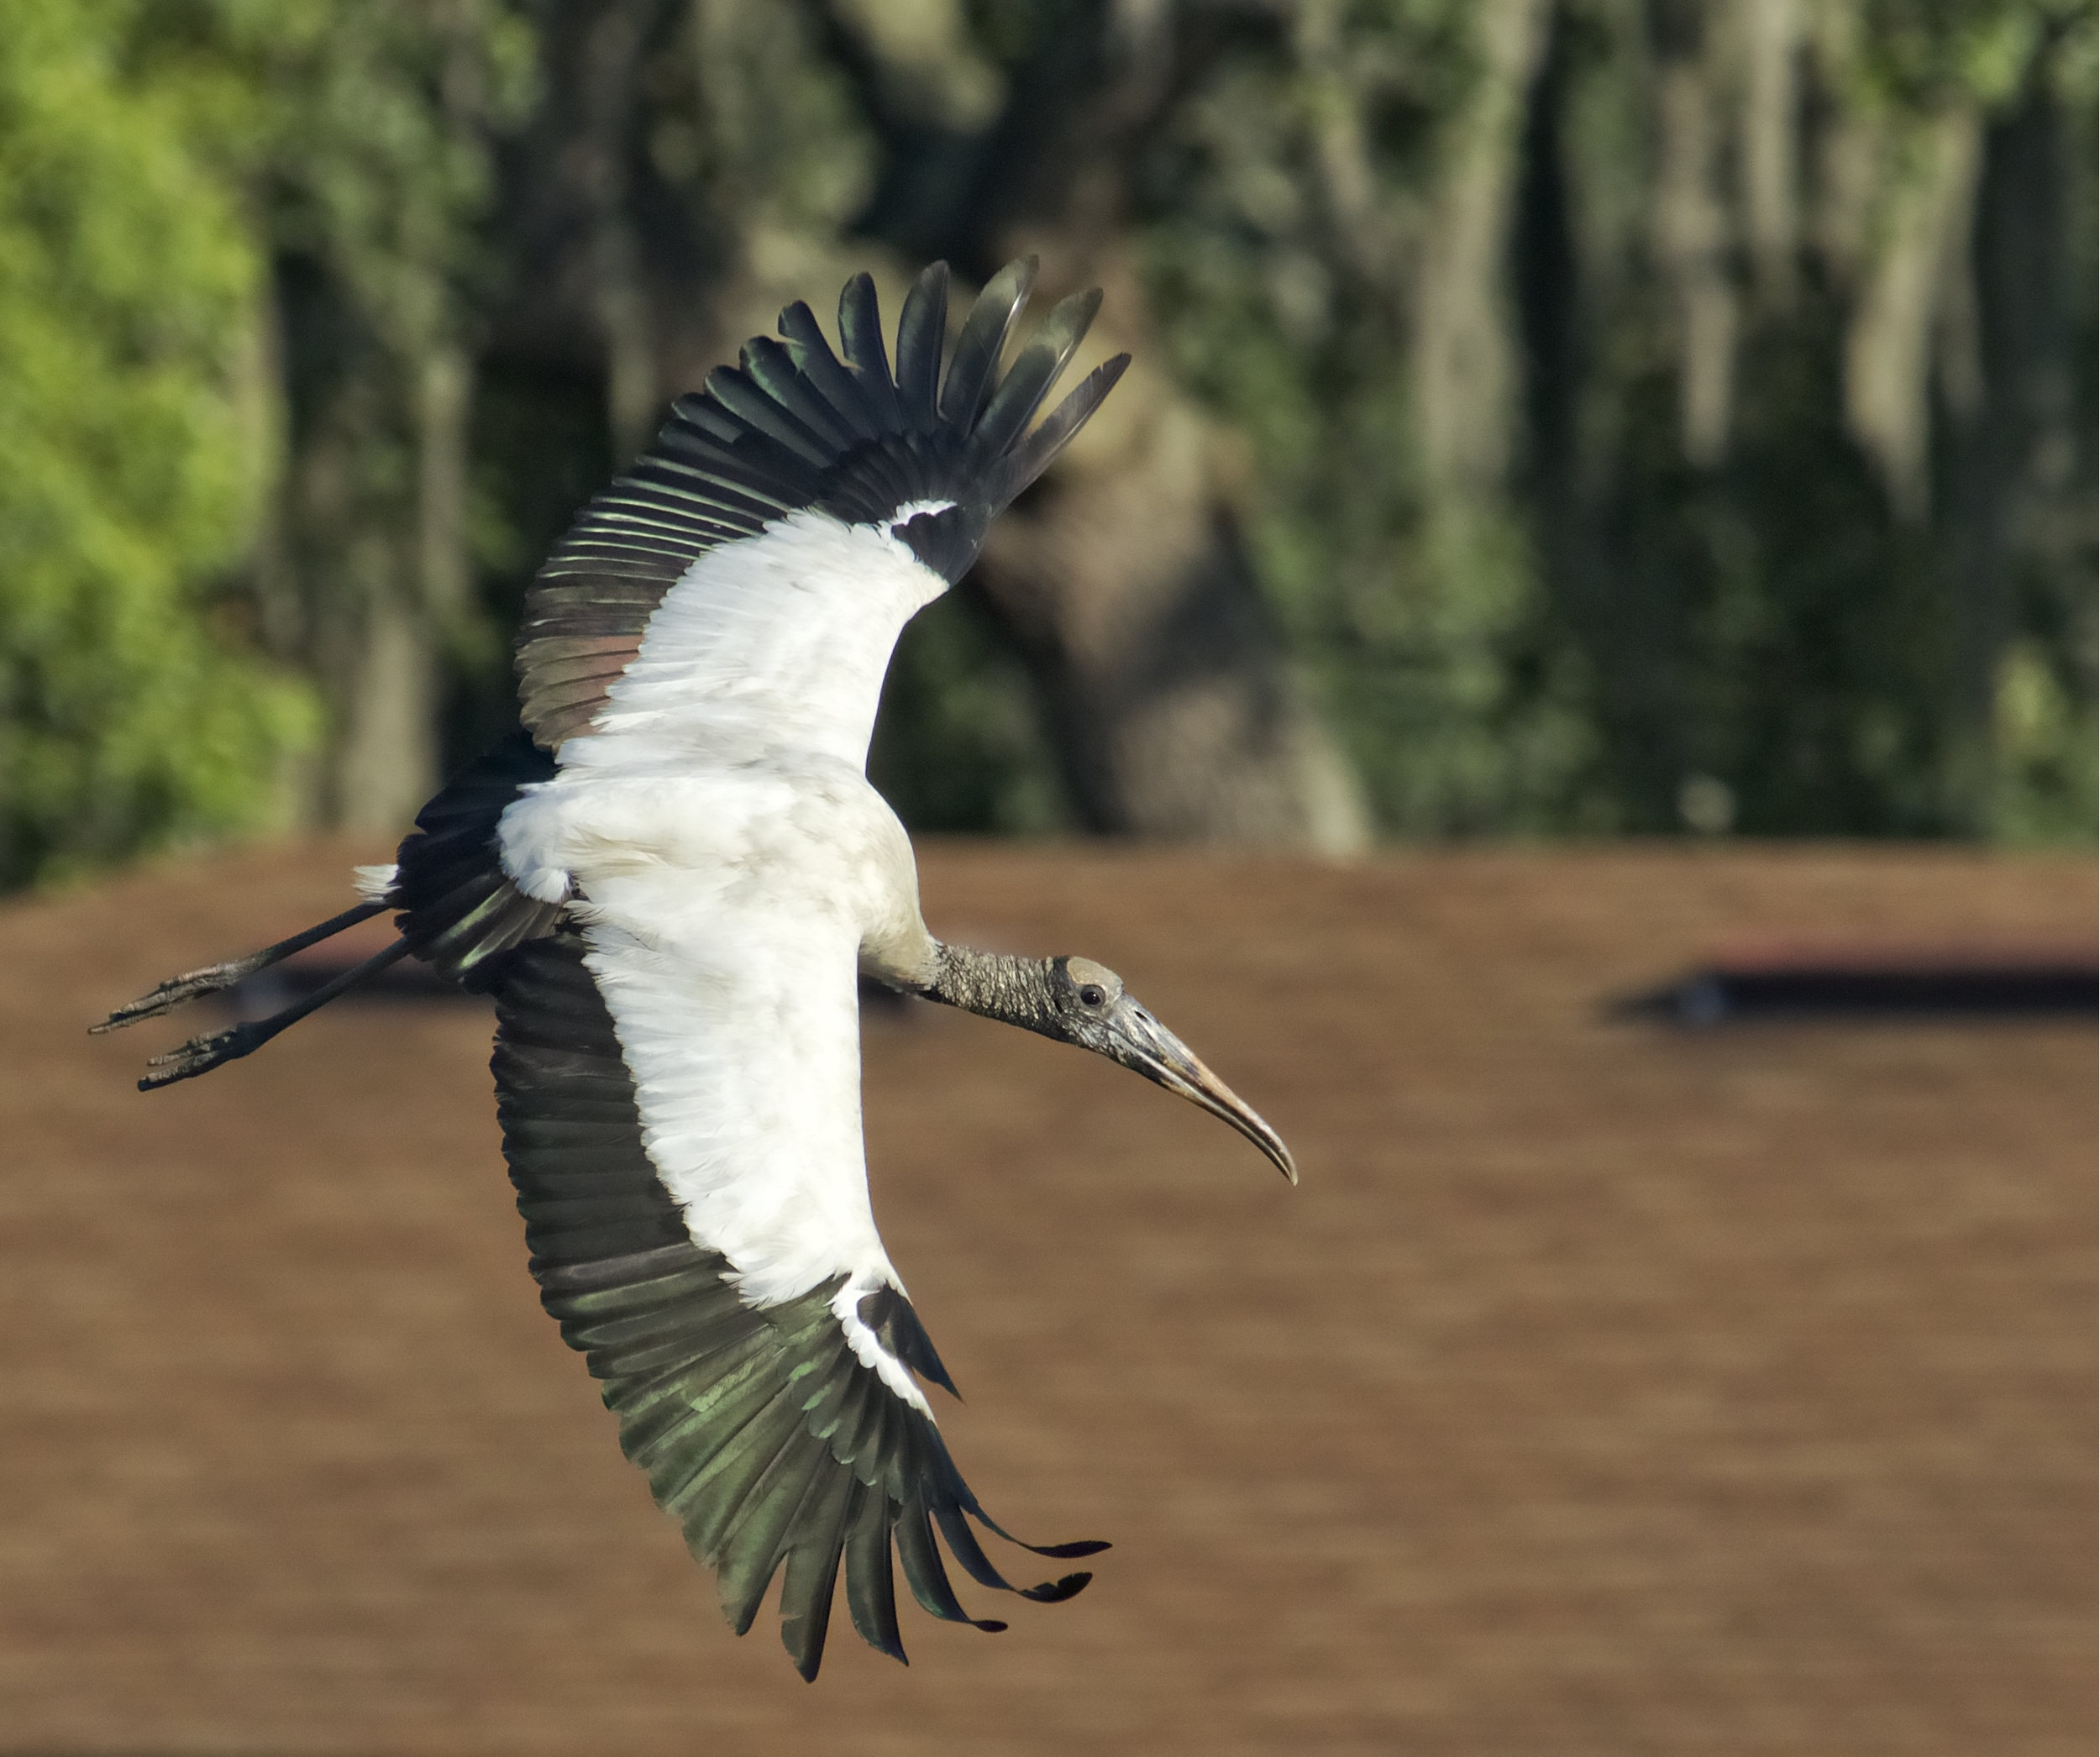 And you should see him fly...soaring mighty and high..a beauty to behold...